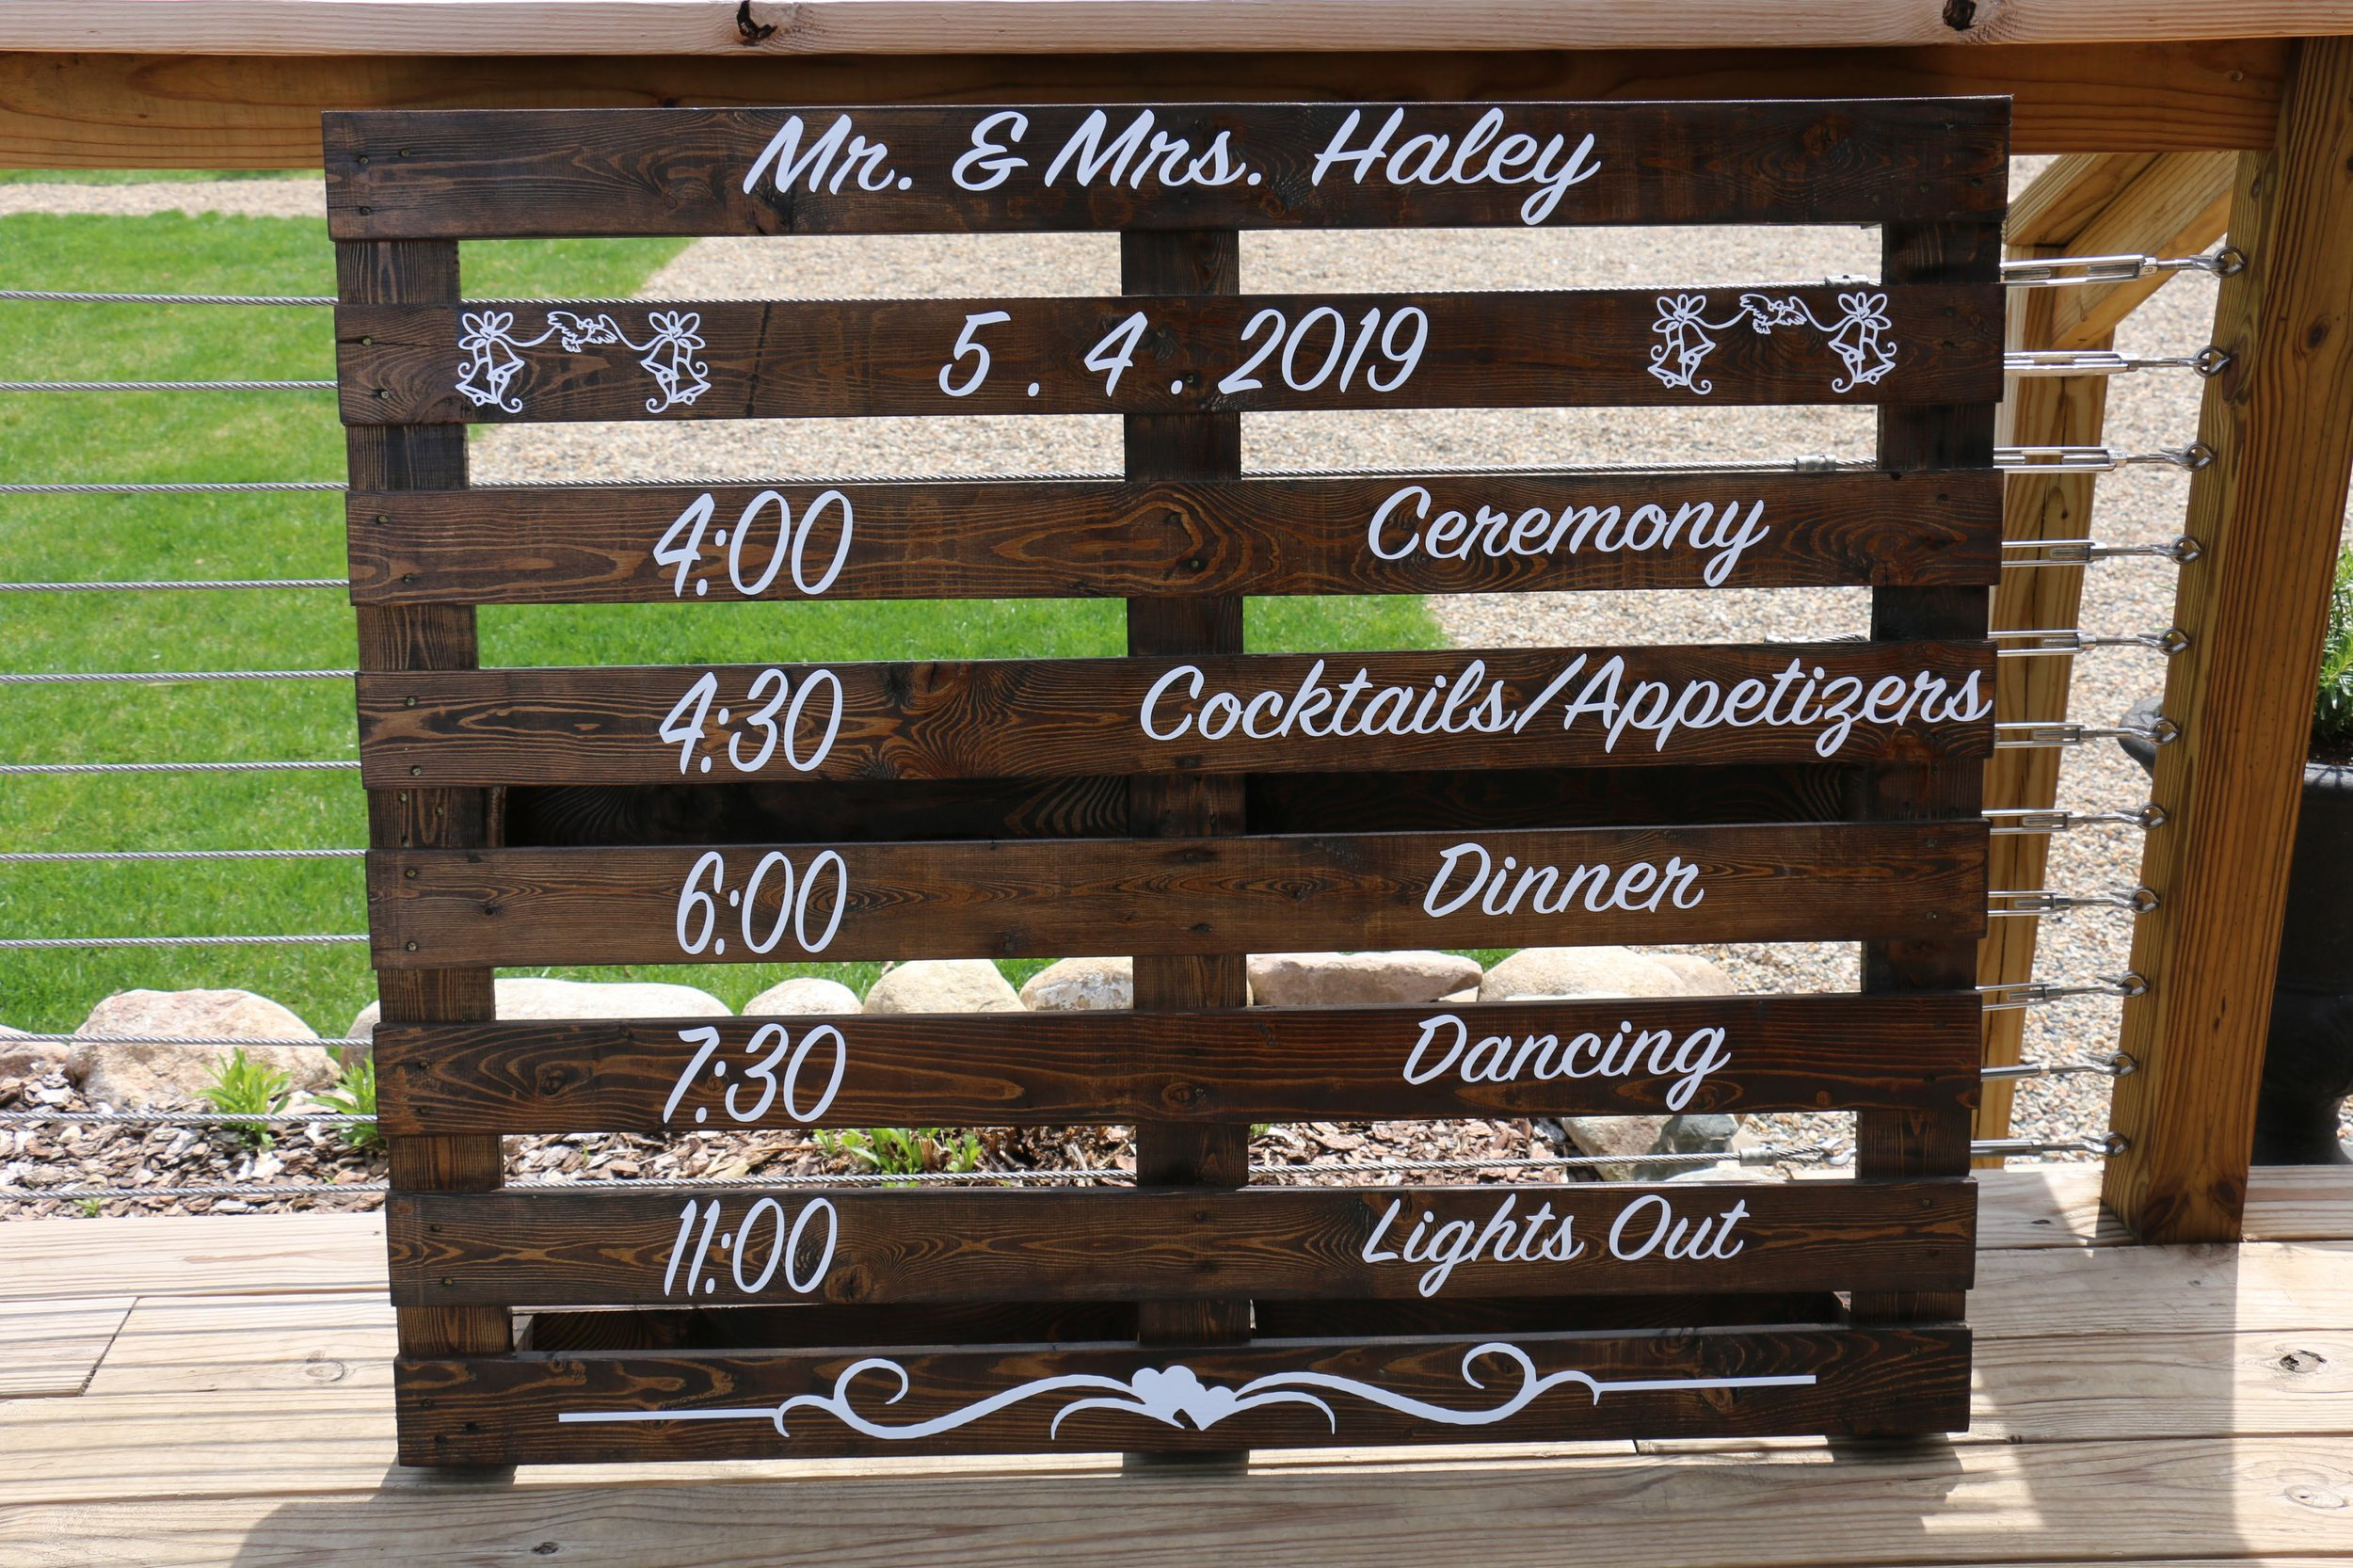 Pallet signs welcomed guests and guided them through the wedding day.